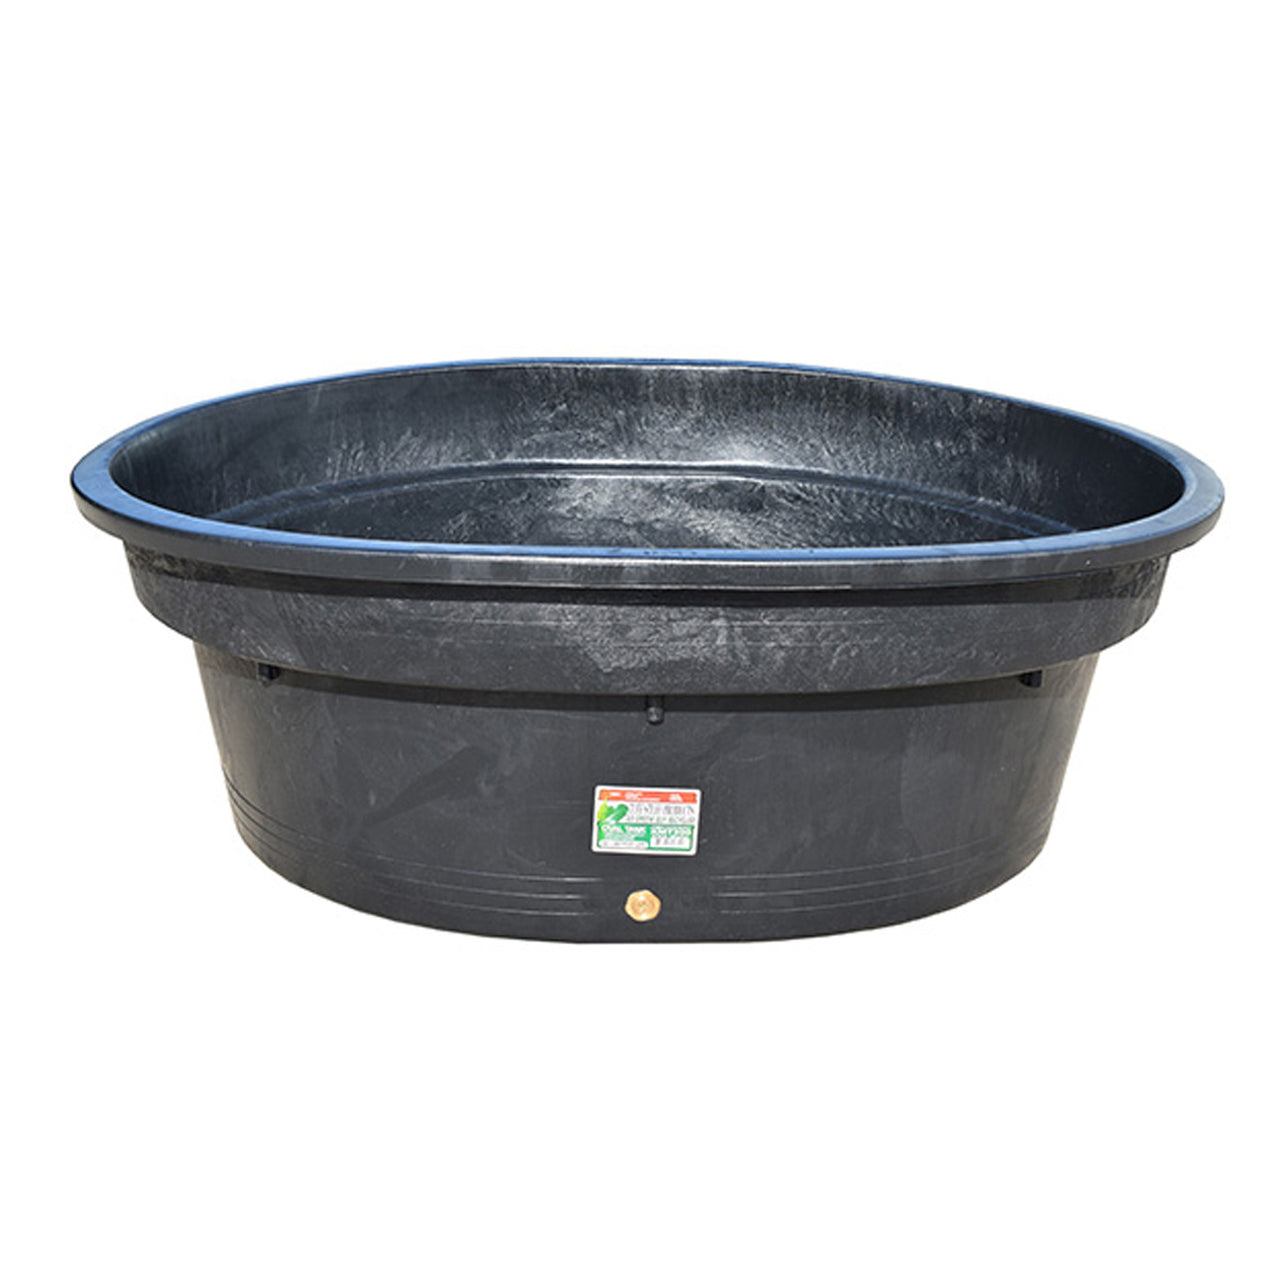 Tuff Stuff Oval Tank With Plug 160 Gal - Tanks Drums Tuff Stuff - Canada